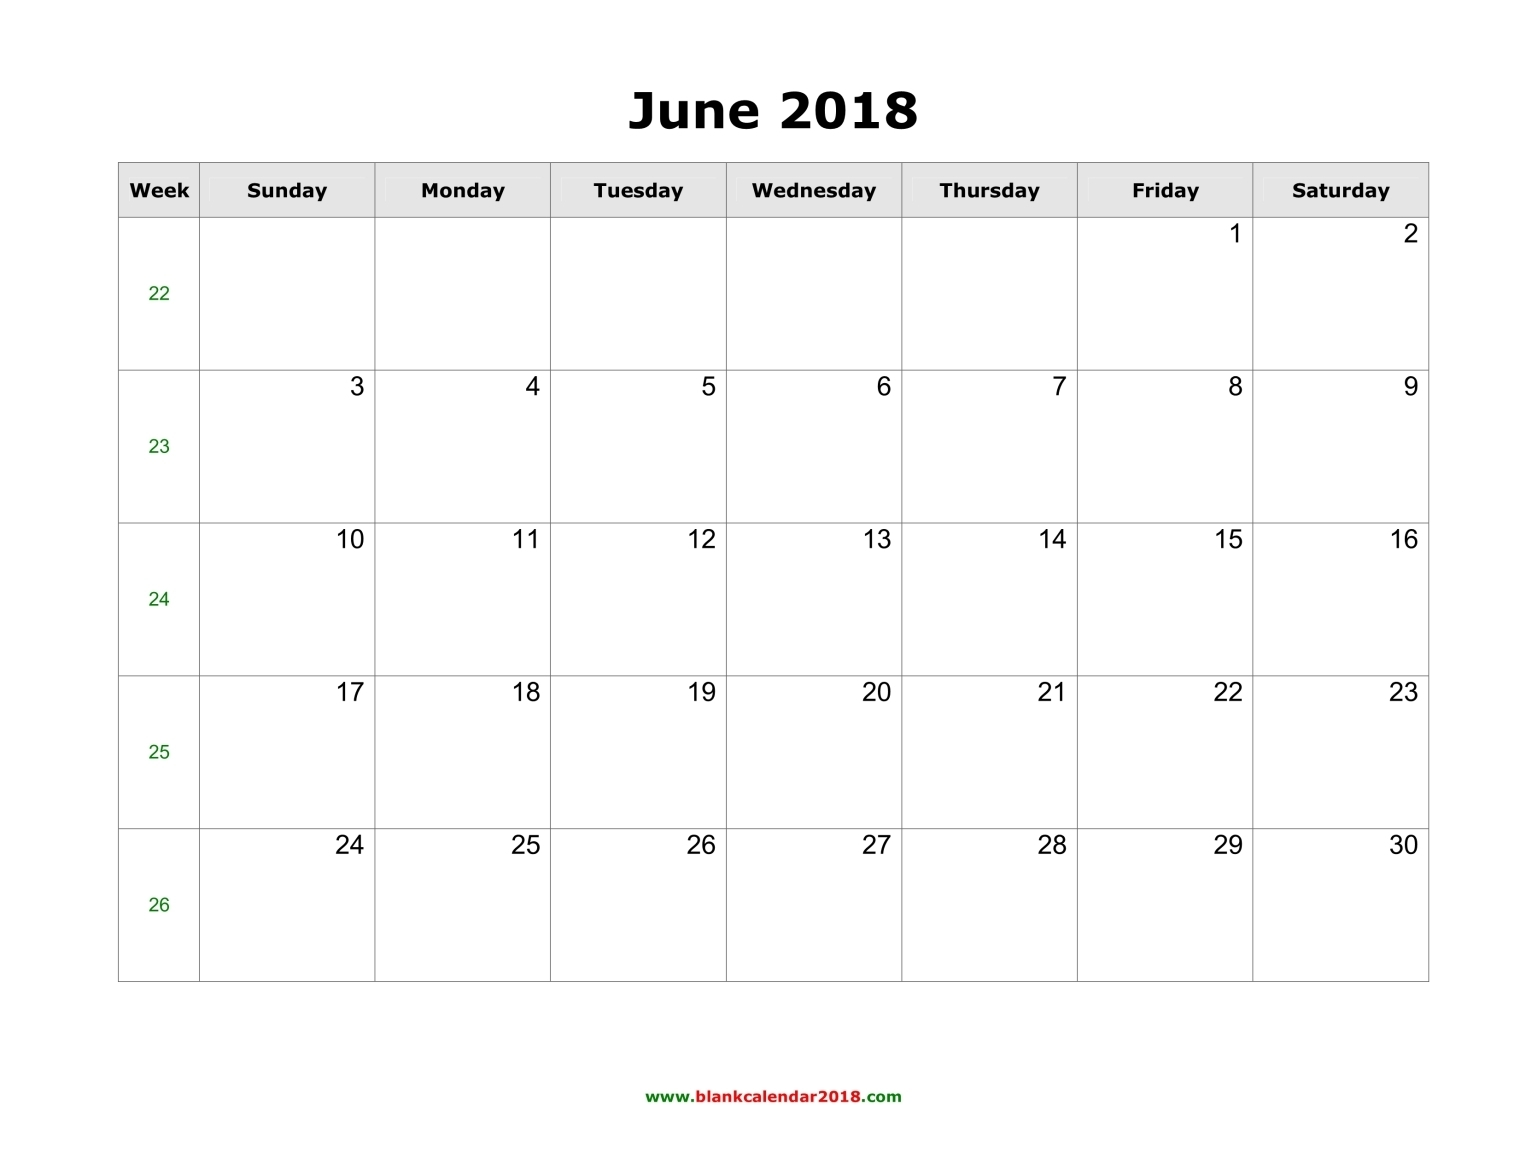 Download Calendar for June 2018 | Printable Calendar Templates